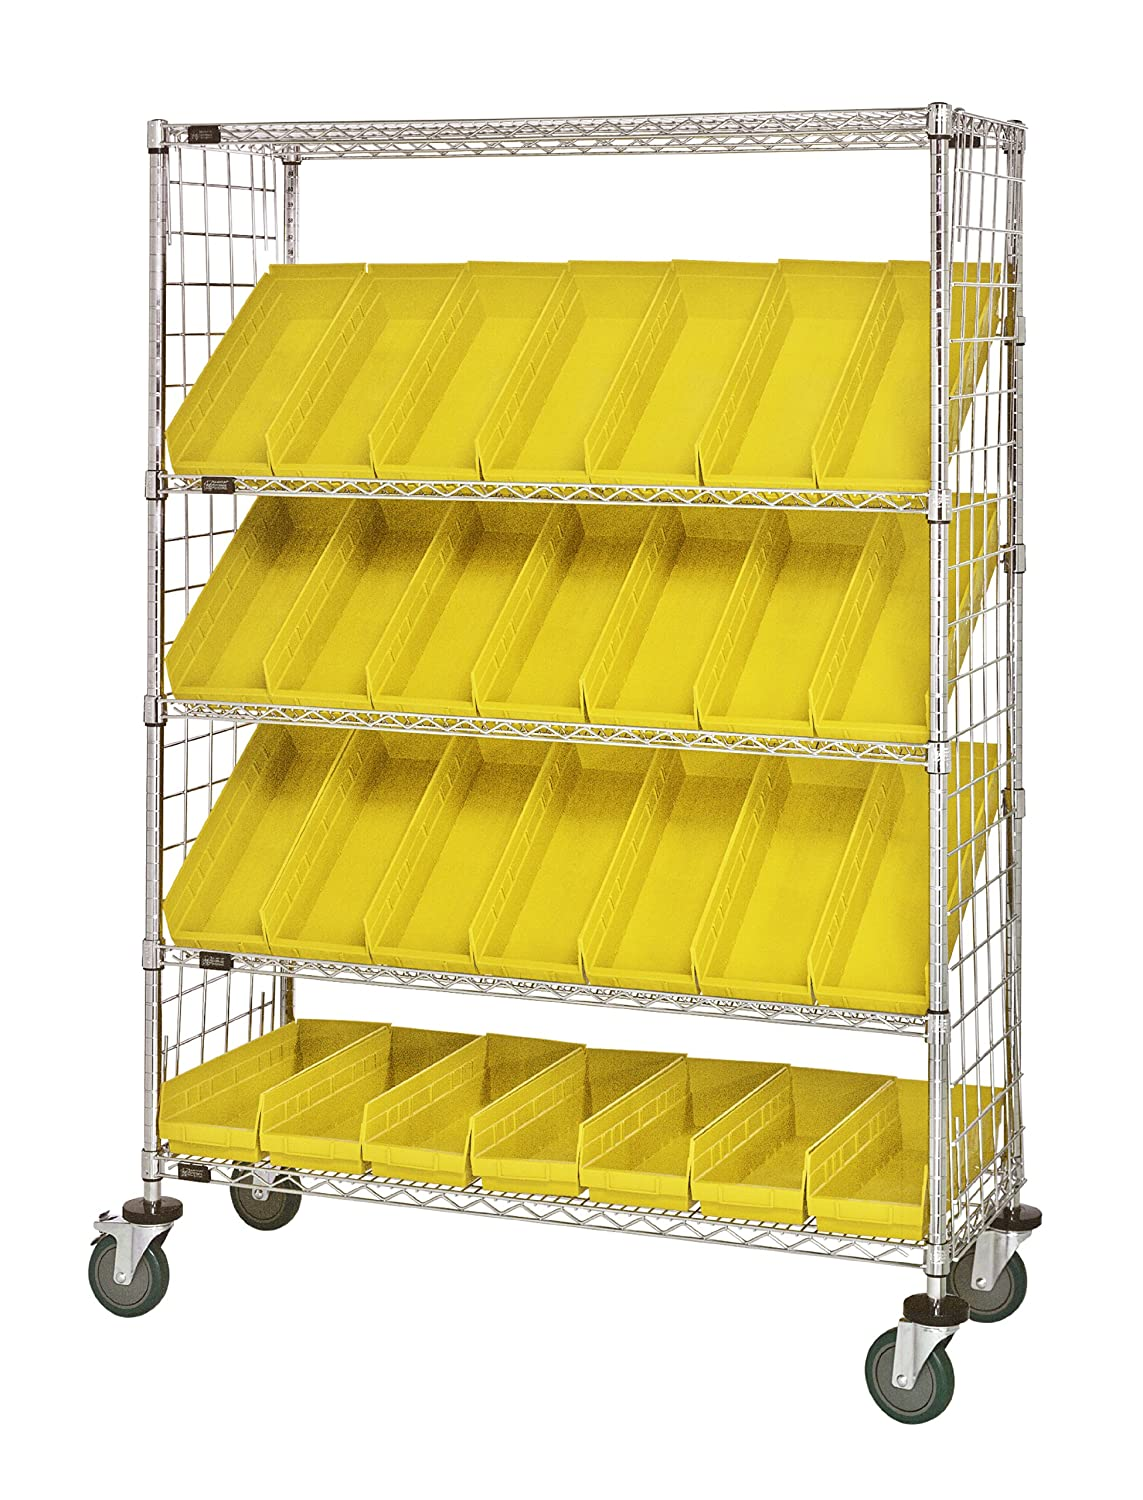 """B008I8AHHC Quantum Storage Systems WRCSL5-63-1848EP-104YL 5-Tier Slanted Wire Shelving Suture Cart with 28 QSB104 Yellow Economy Shelf Bins, Enclosed, 2 Horizontal and 3 Slanted Shelves, Chrome Finish, 69"""" Height x 48"""" Width x 18"""" Depth 9128x59OpML._SL150"""